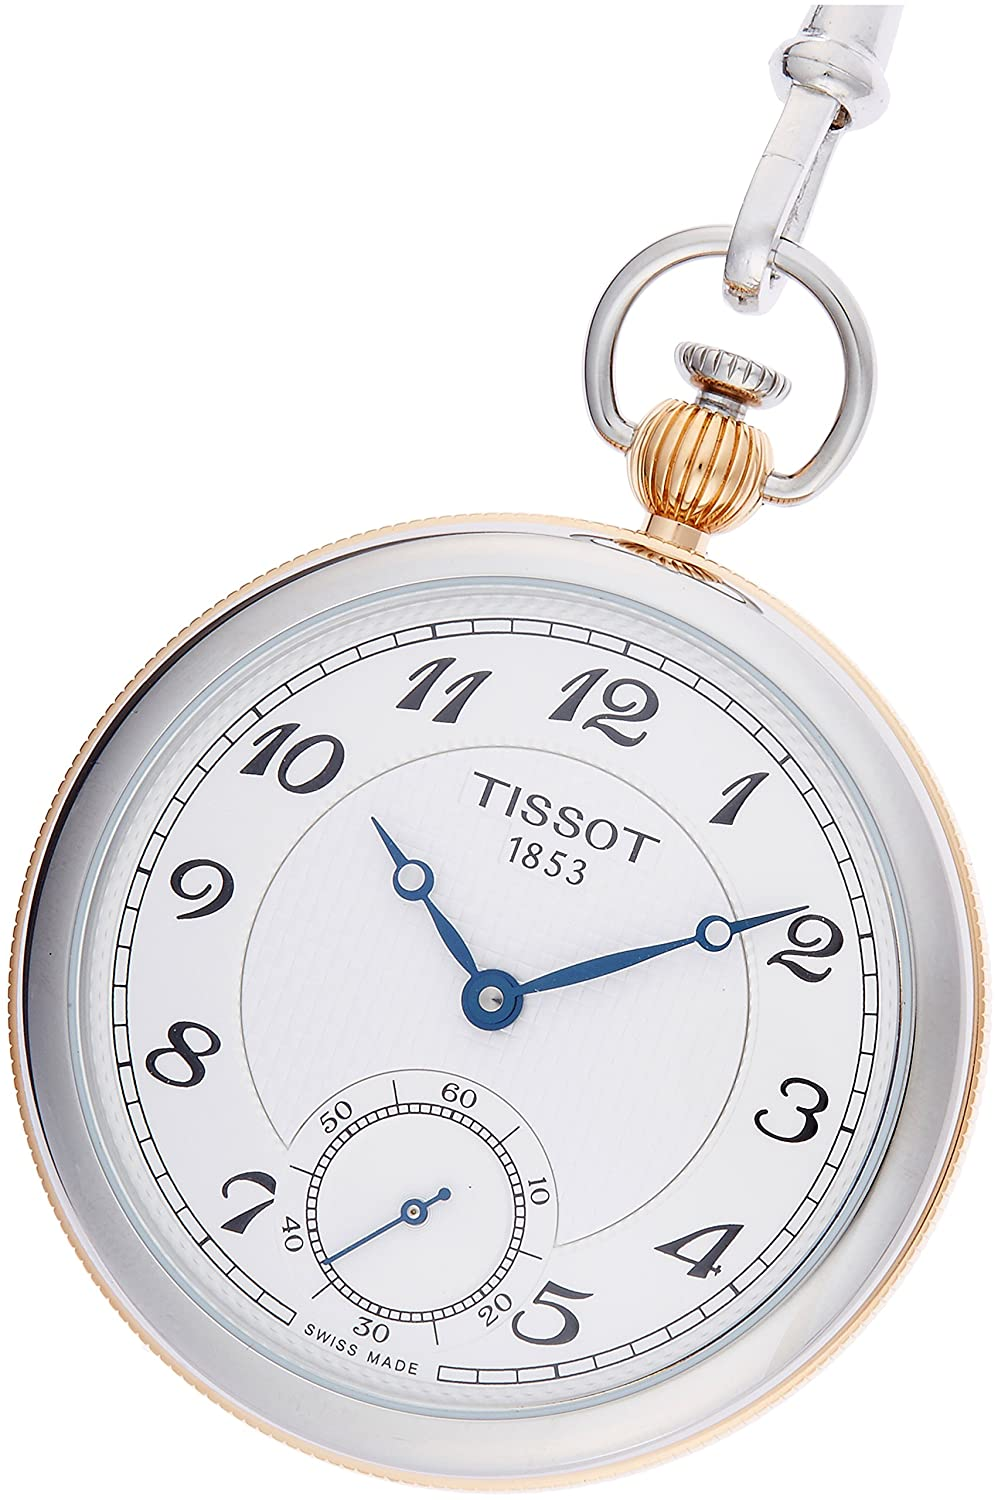 Bridgeport Lepine 032 MechanischT860 01 Tissot 405 29 Nw8n0m